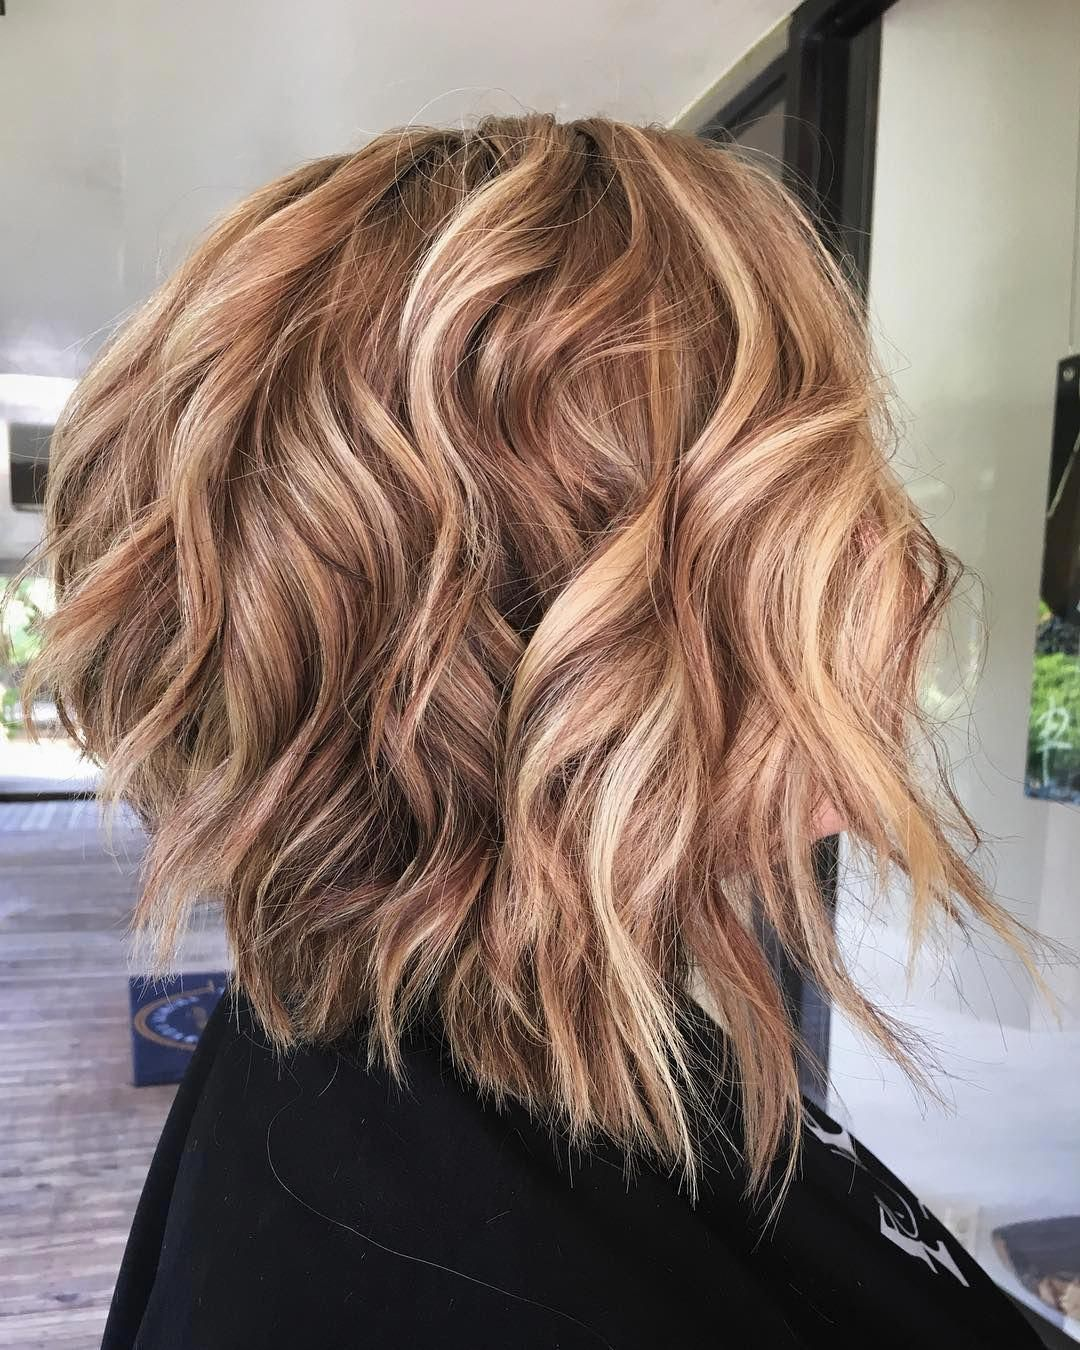 9 Fall Hair Color Trends for Blondes You'll Be Seeing Everywhere